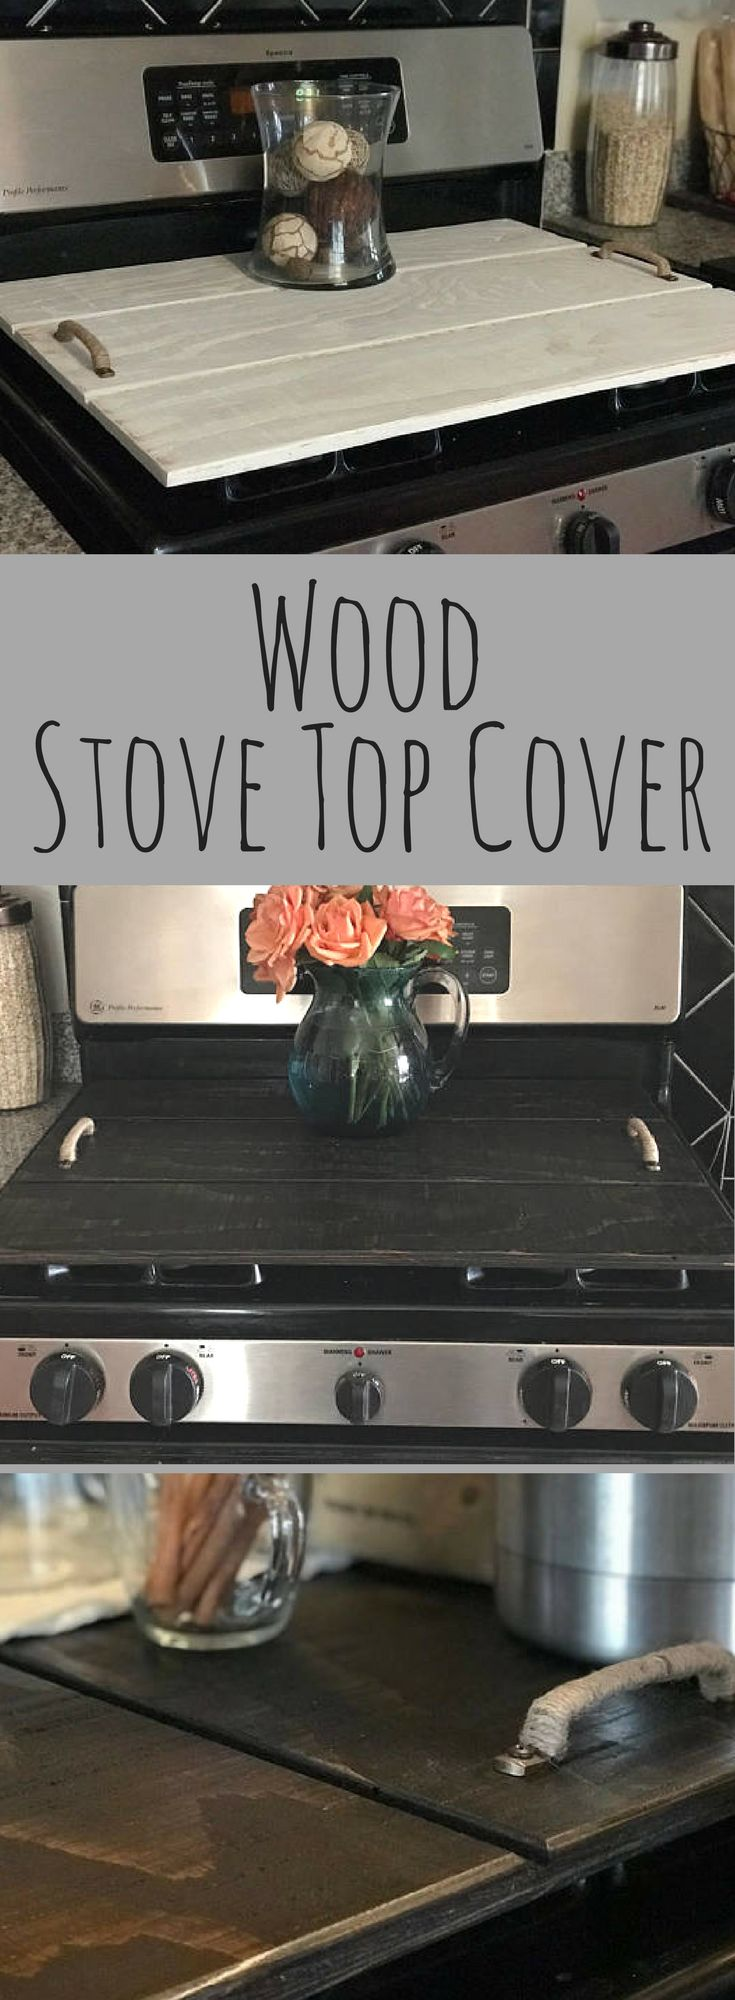 Wood Stove Cover, Kitchen decor, wood stove topper, Oven, Wood Tray, Shiplap Style Cover, Rustic kitchen decor, Farmhouse kitchen decor, Primitive kitchen, home decor #ad #woodcraftplans #decoratingkitchen